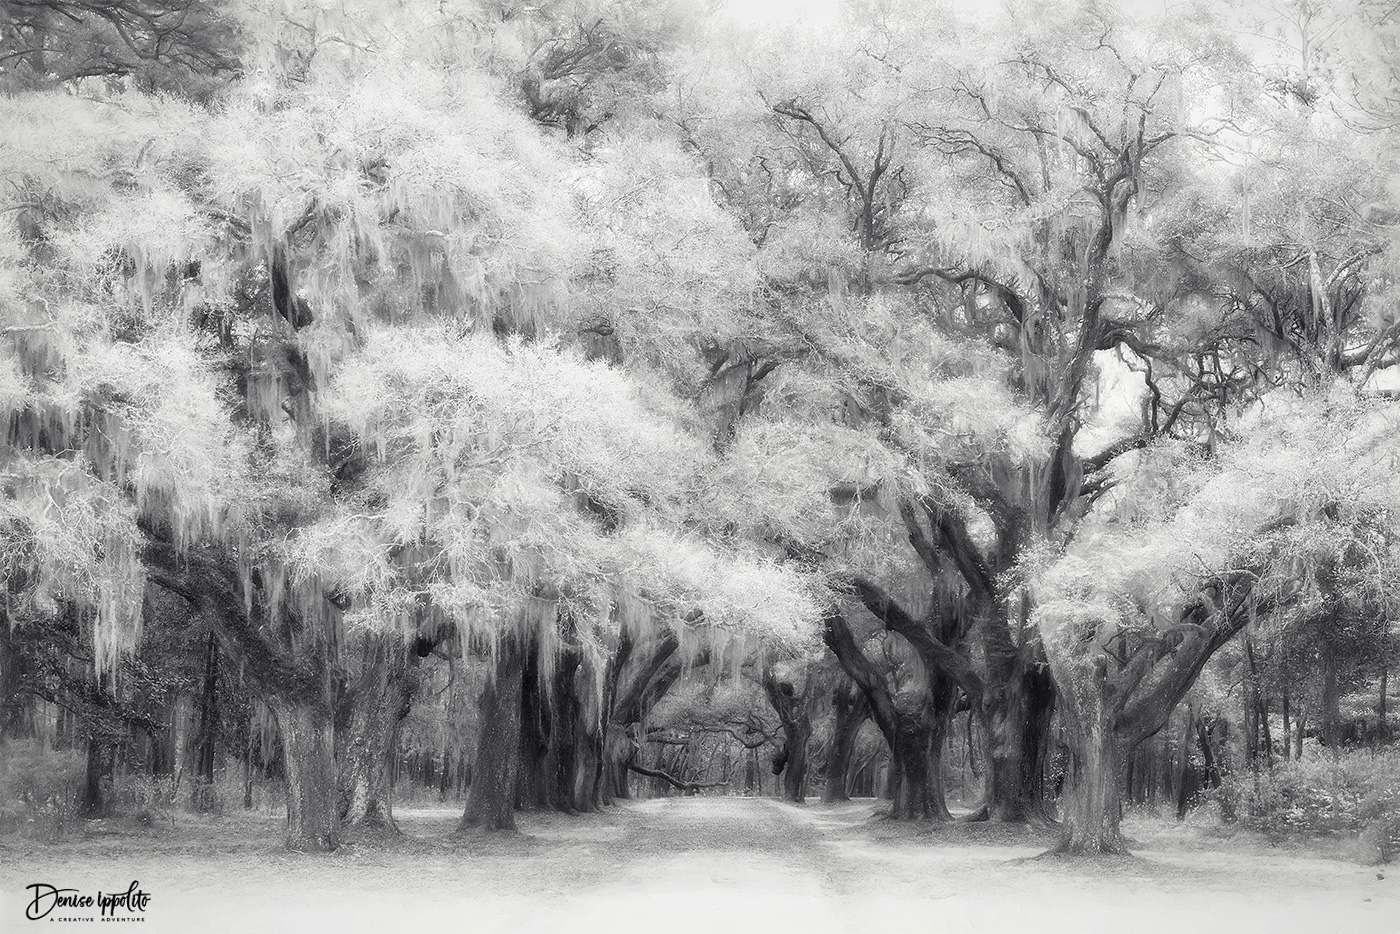 Infrared Conversion + Topaz Impression